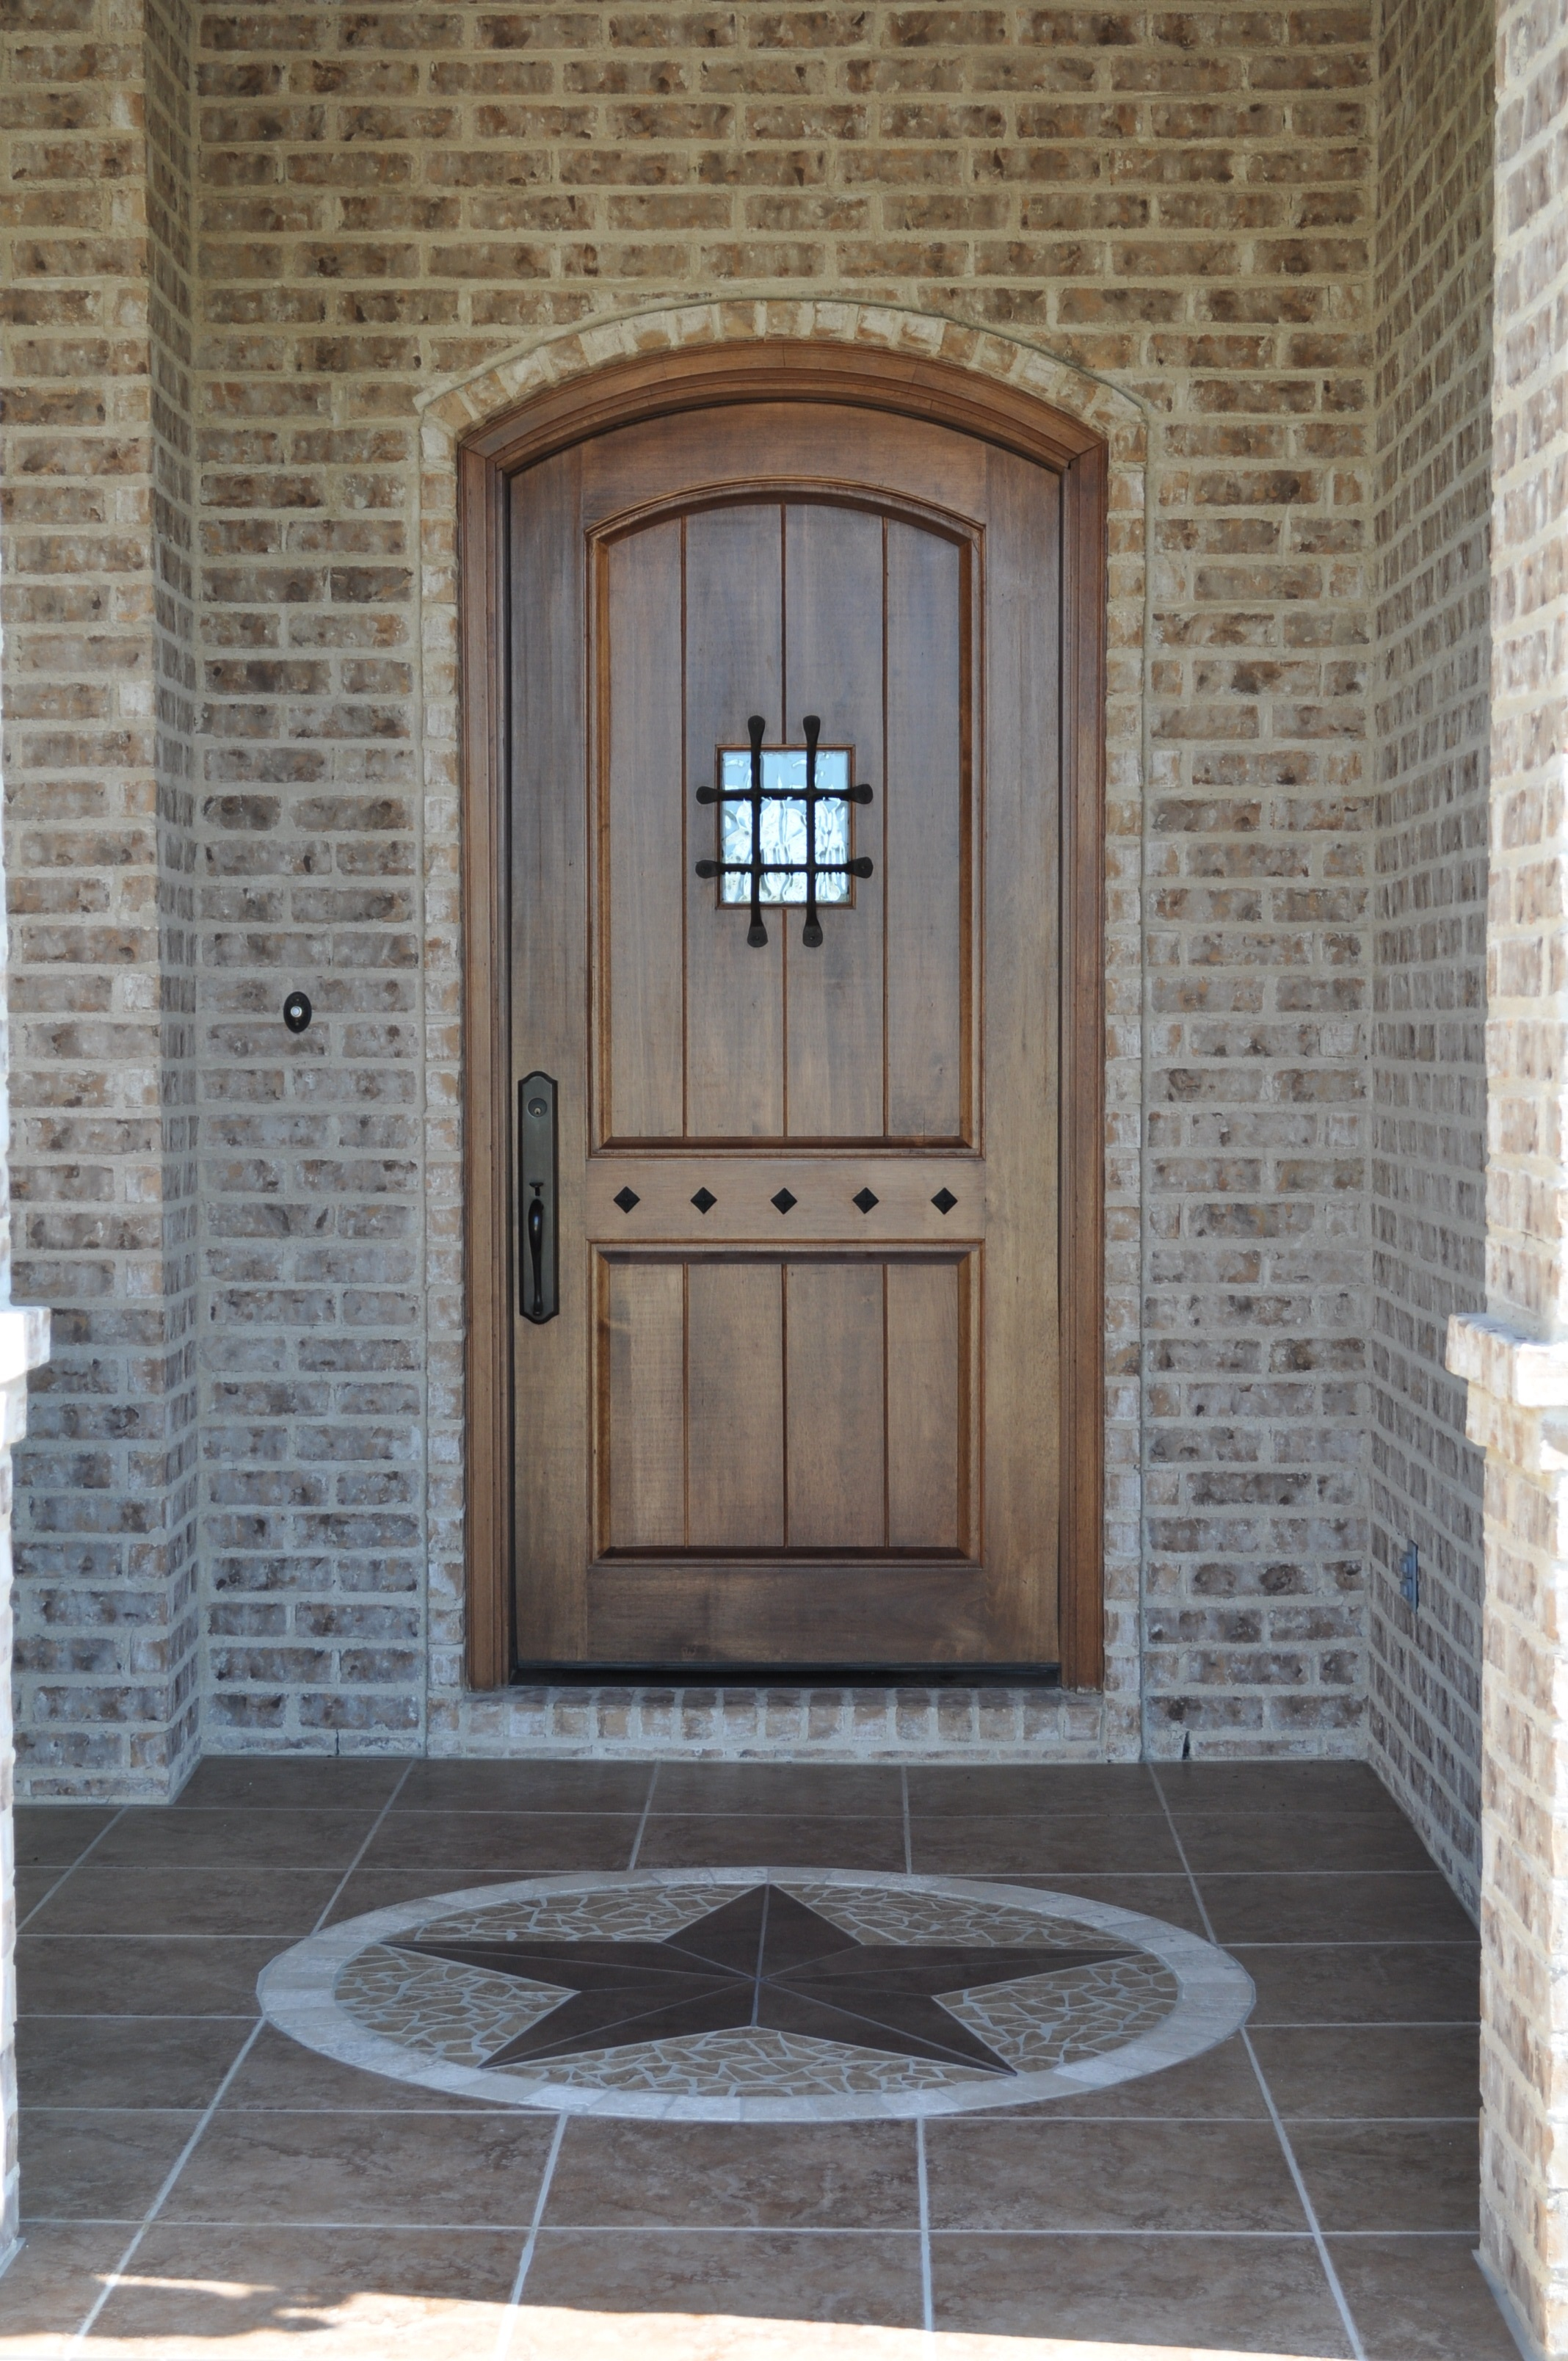 3216 #604D3D Entry Doors: Entry Doors Dallas Tx picture/photo Entry Doors San Antonio 38992136